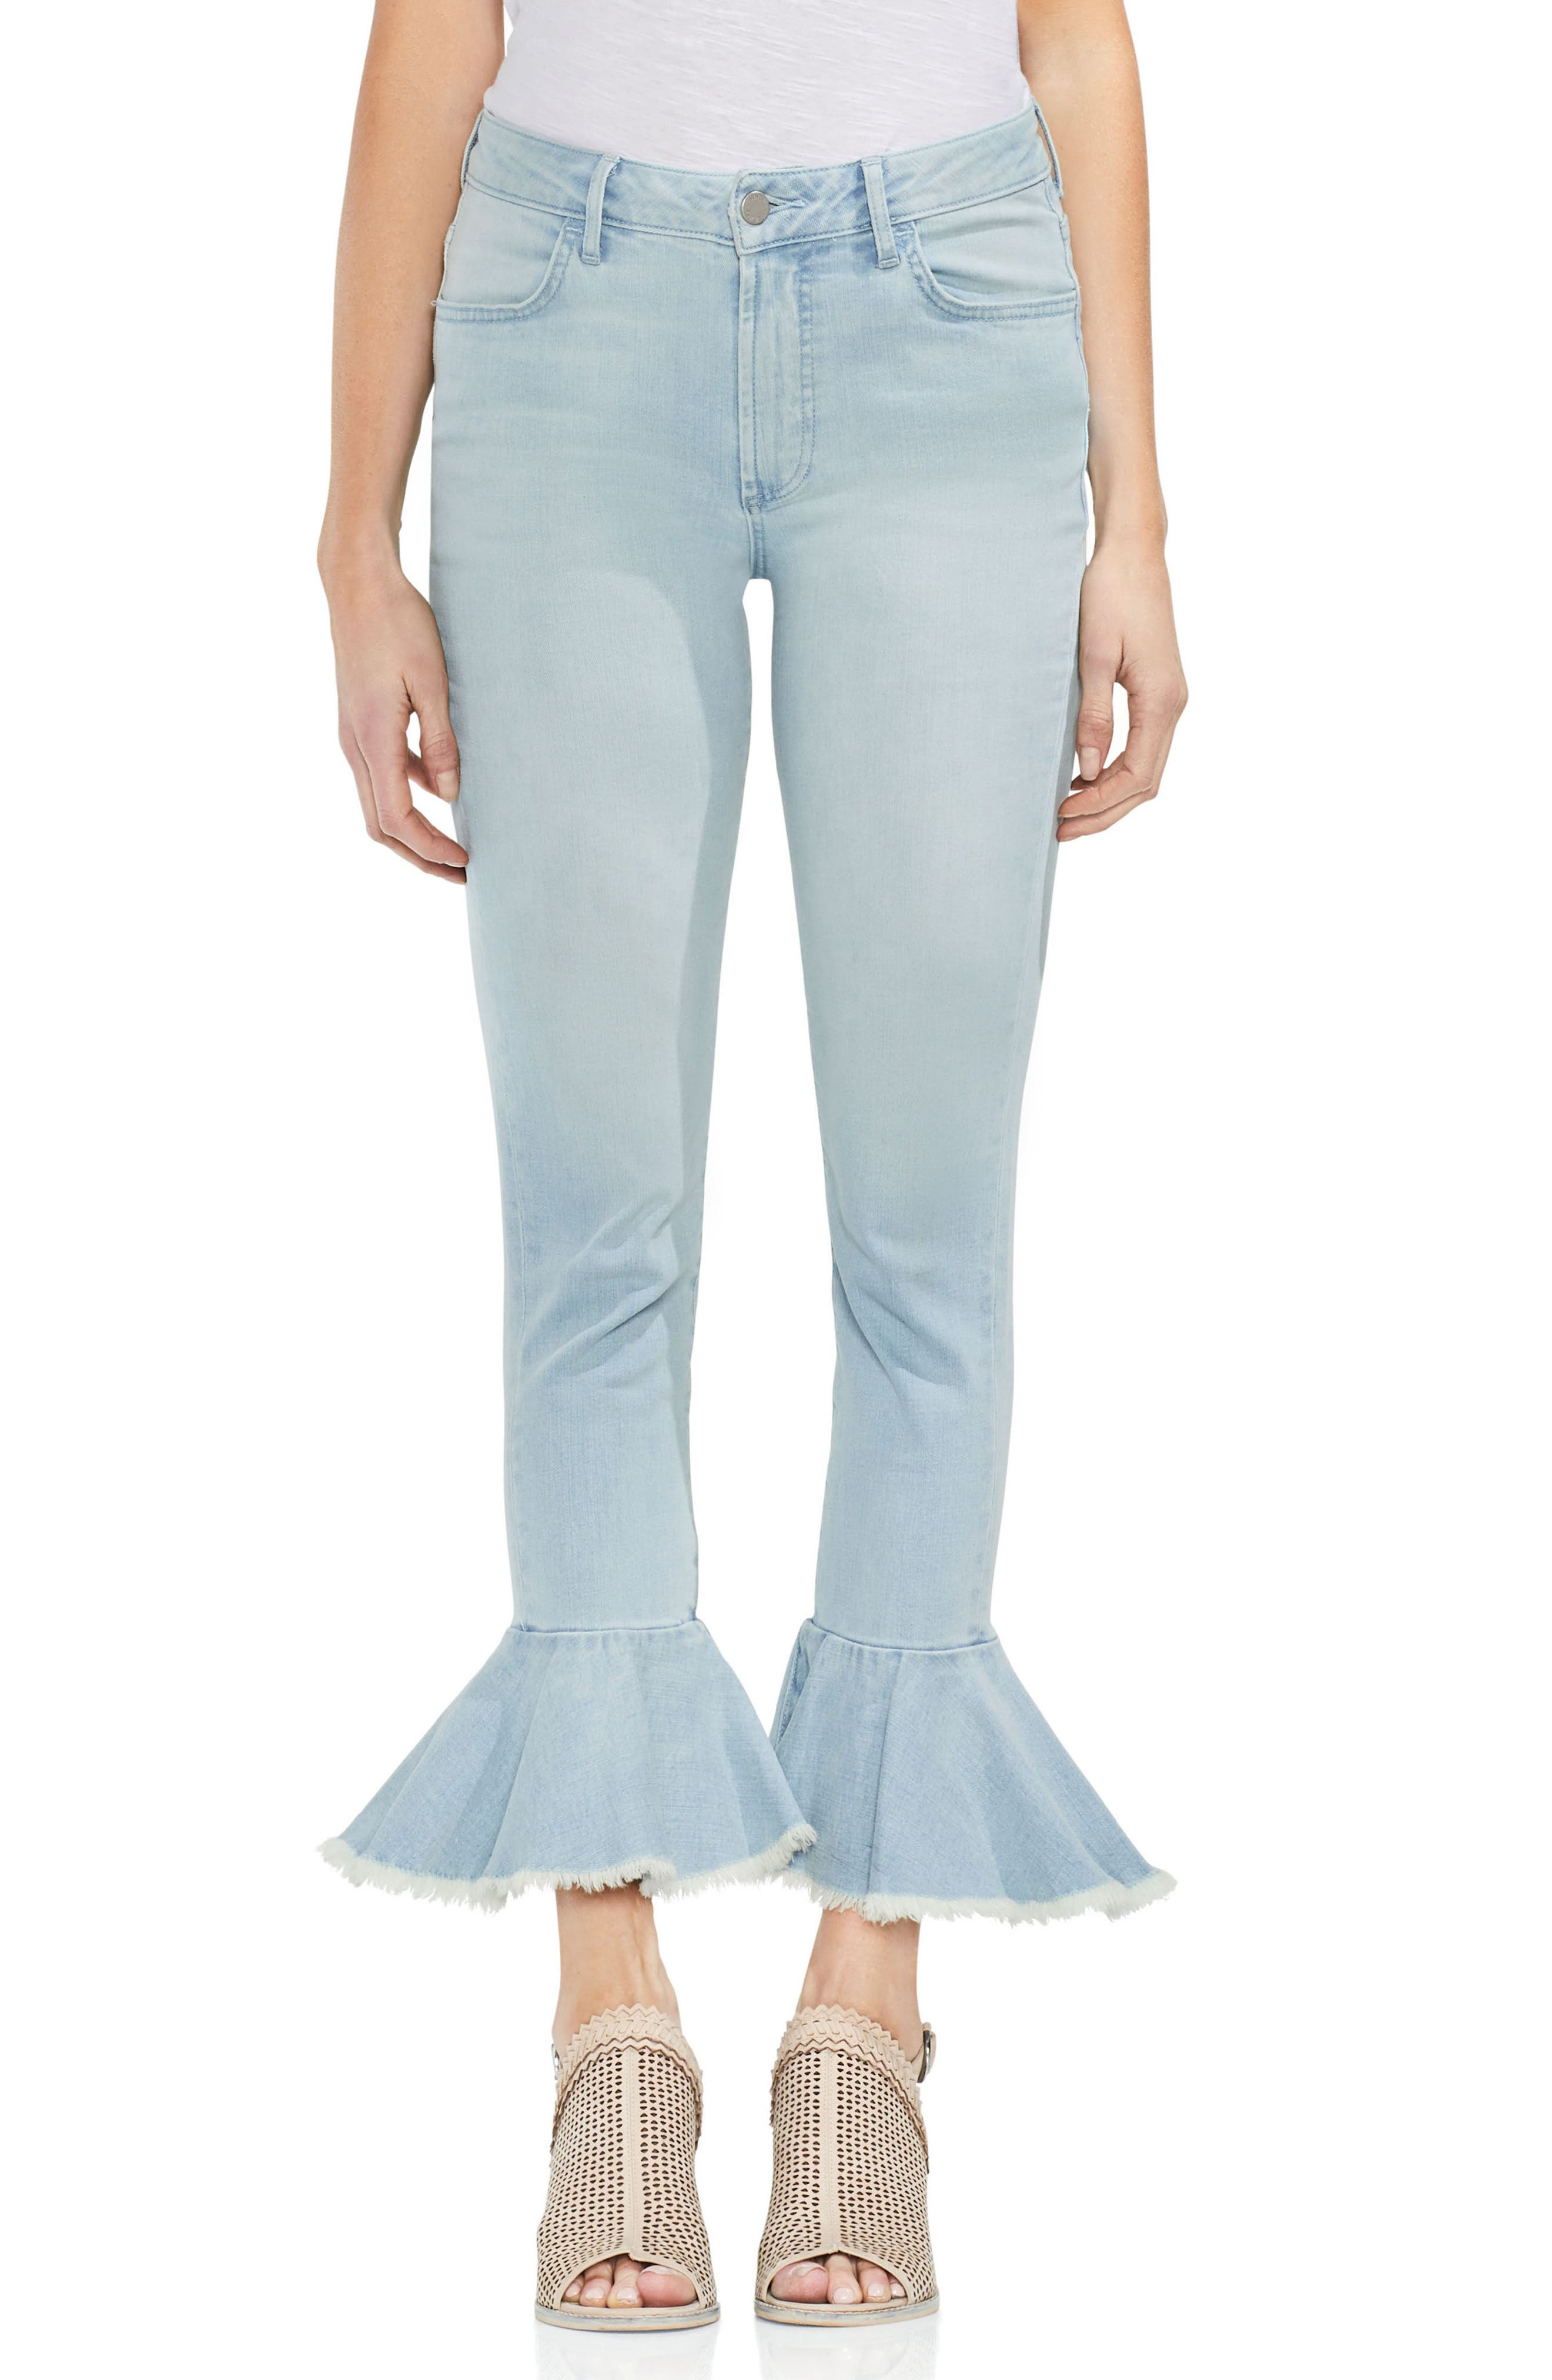 Vince Camuto Ruffle Hem Ankle Jeans (Surf)